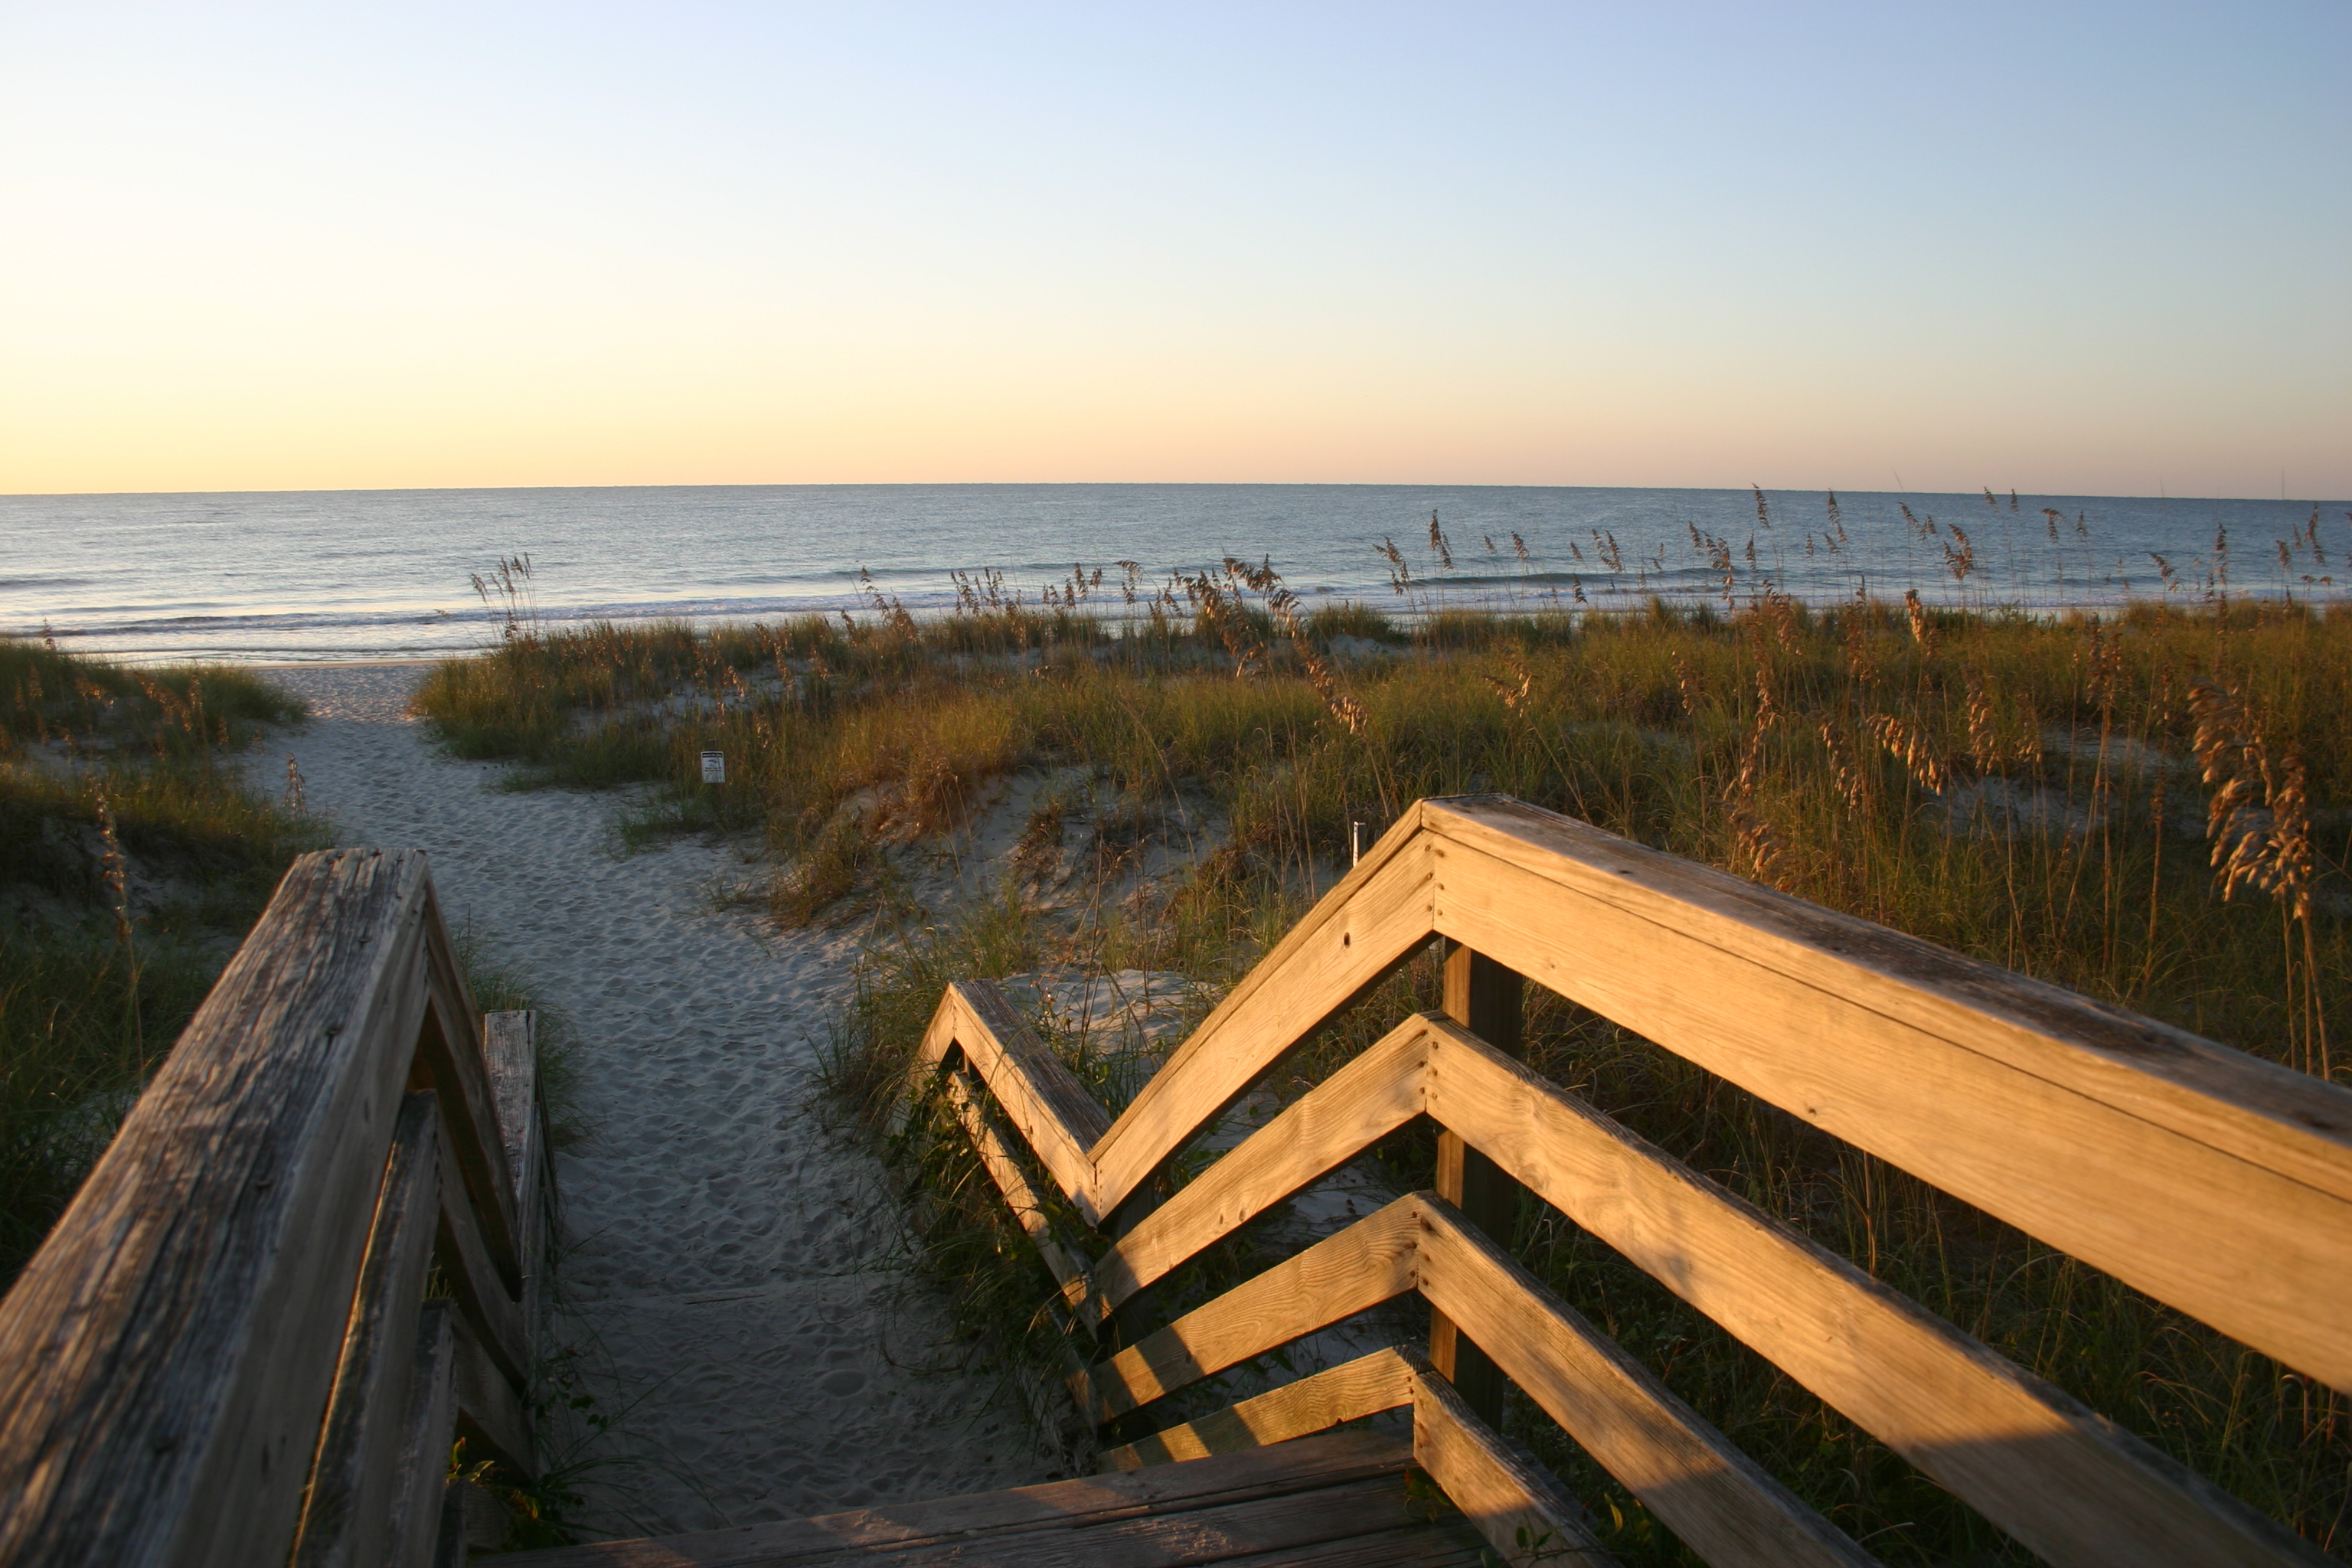 Luxurious Litchfield Beach And Golf Resort Recognized by USA Today